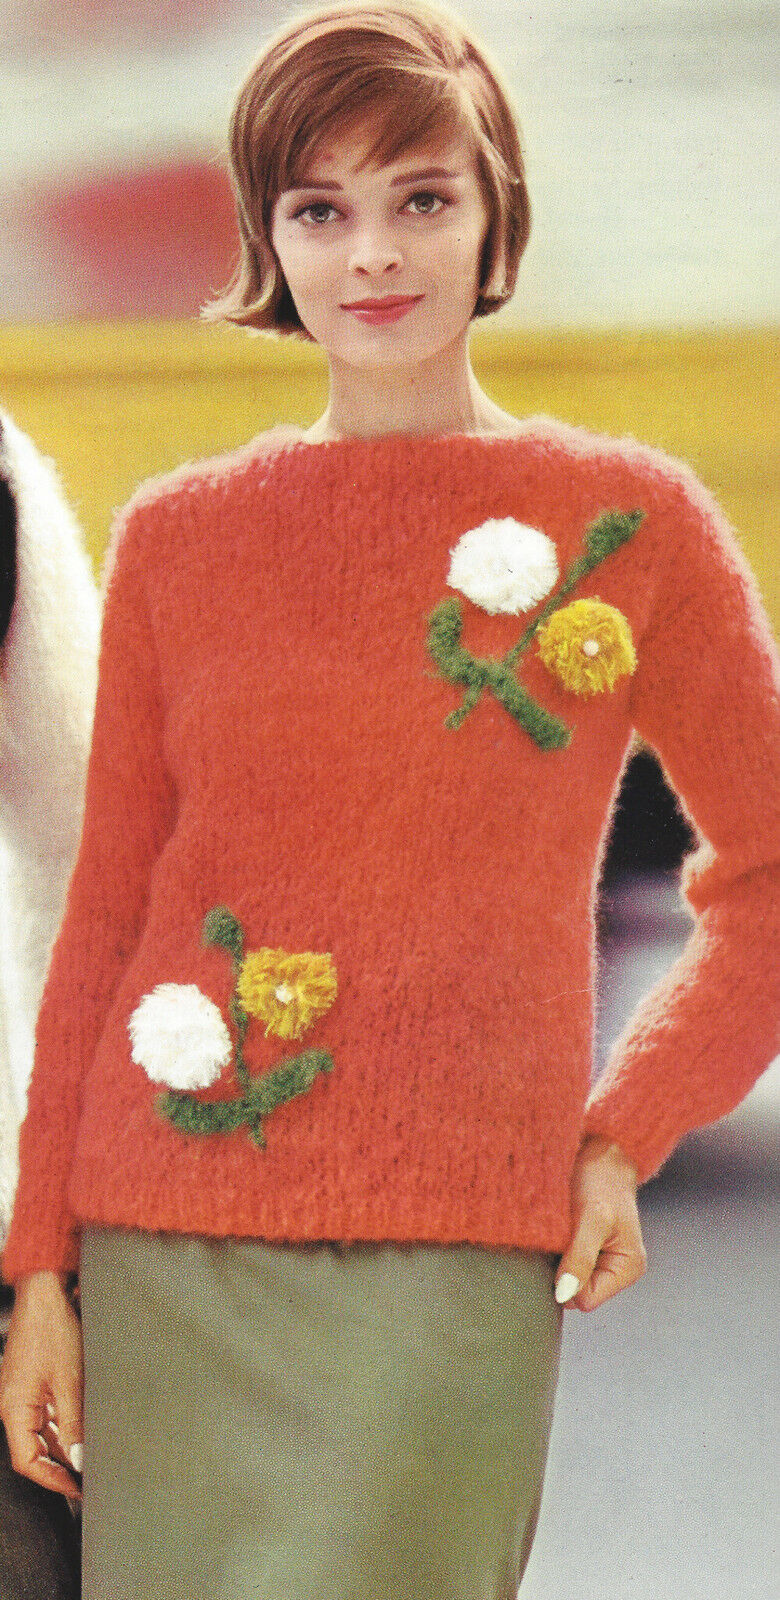 Vintage Knitting Pattern to Make Pullover Sweater Boat Neck ...